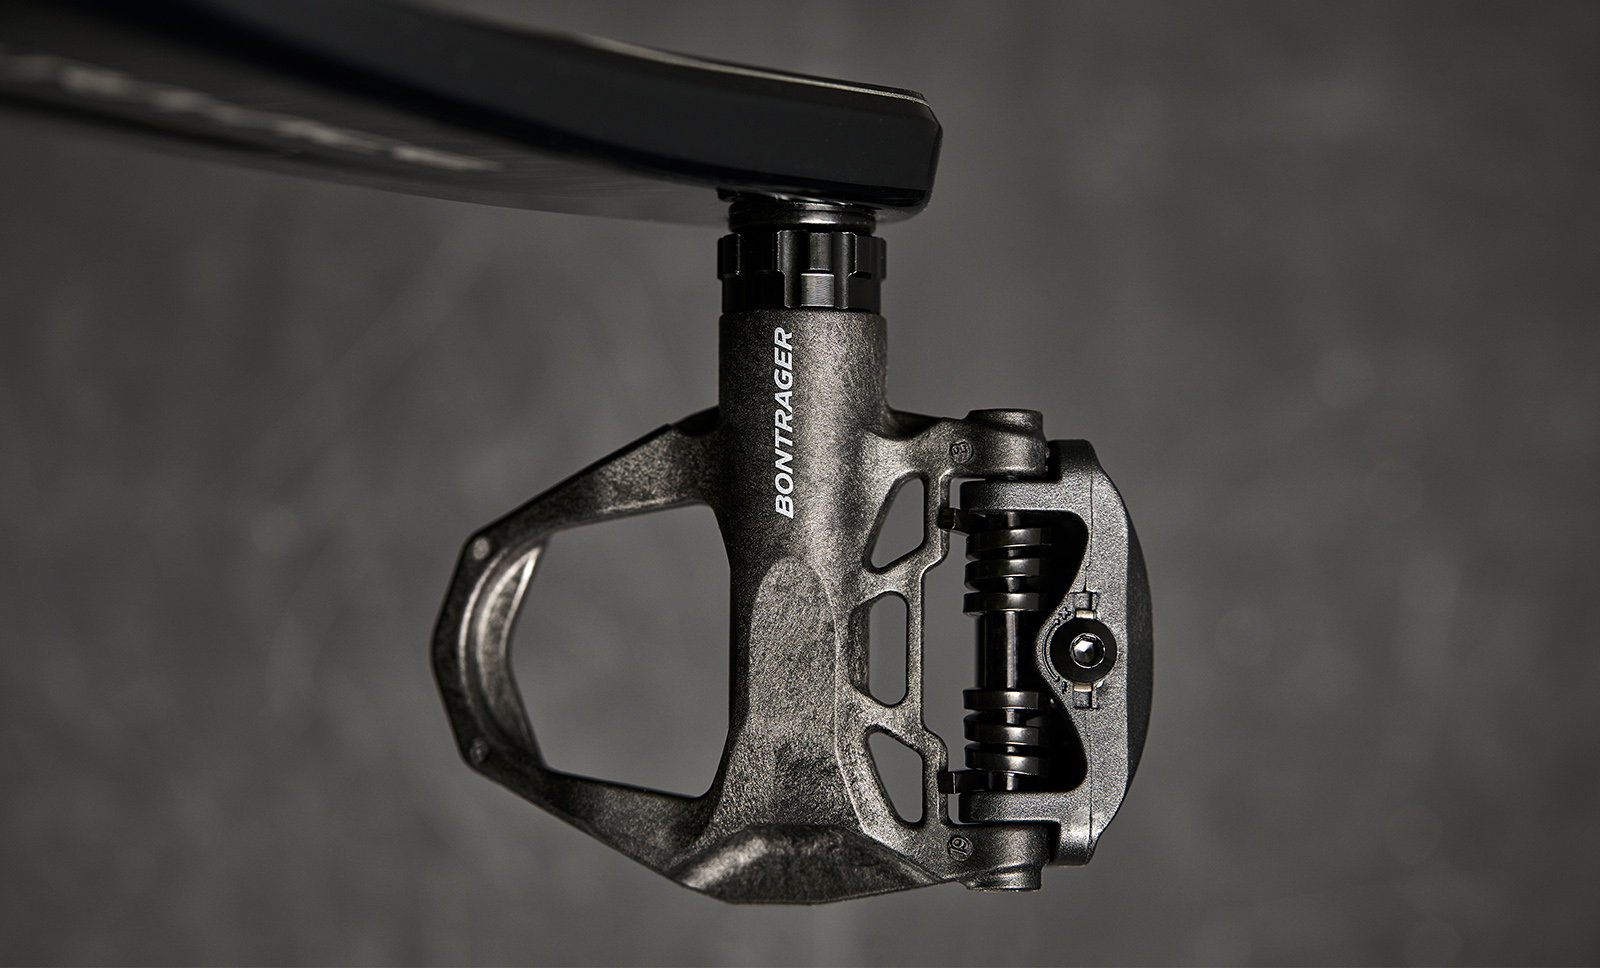 Bontrager moves upmarket with new Elite Road composite road pedals